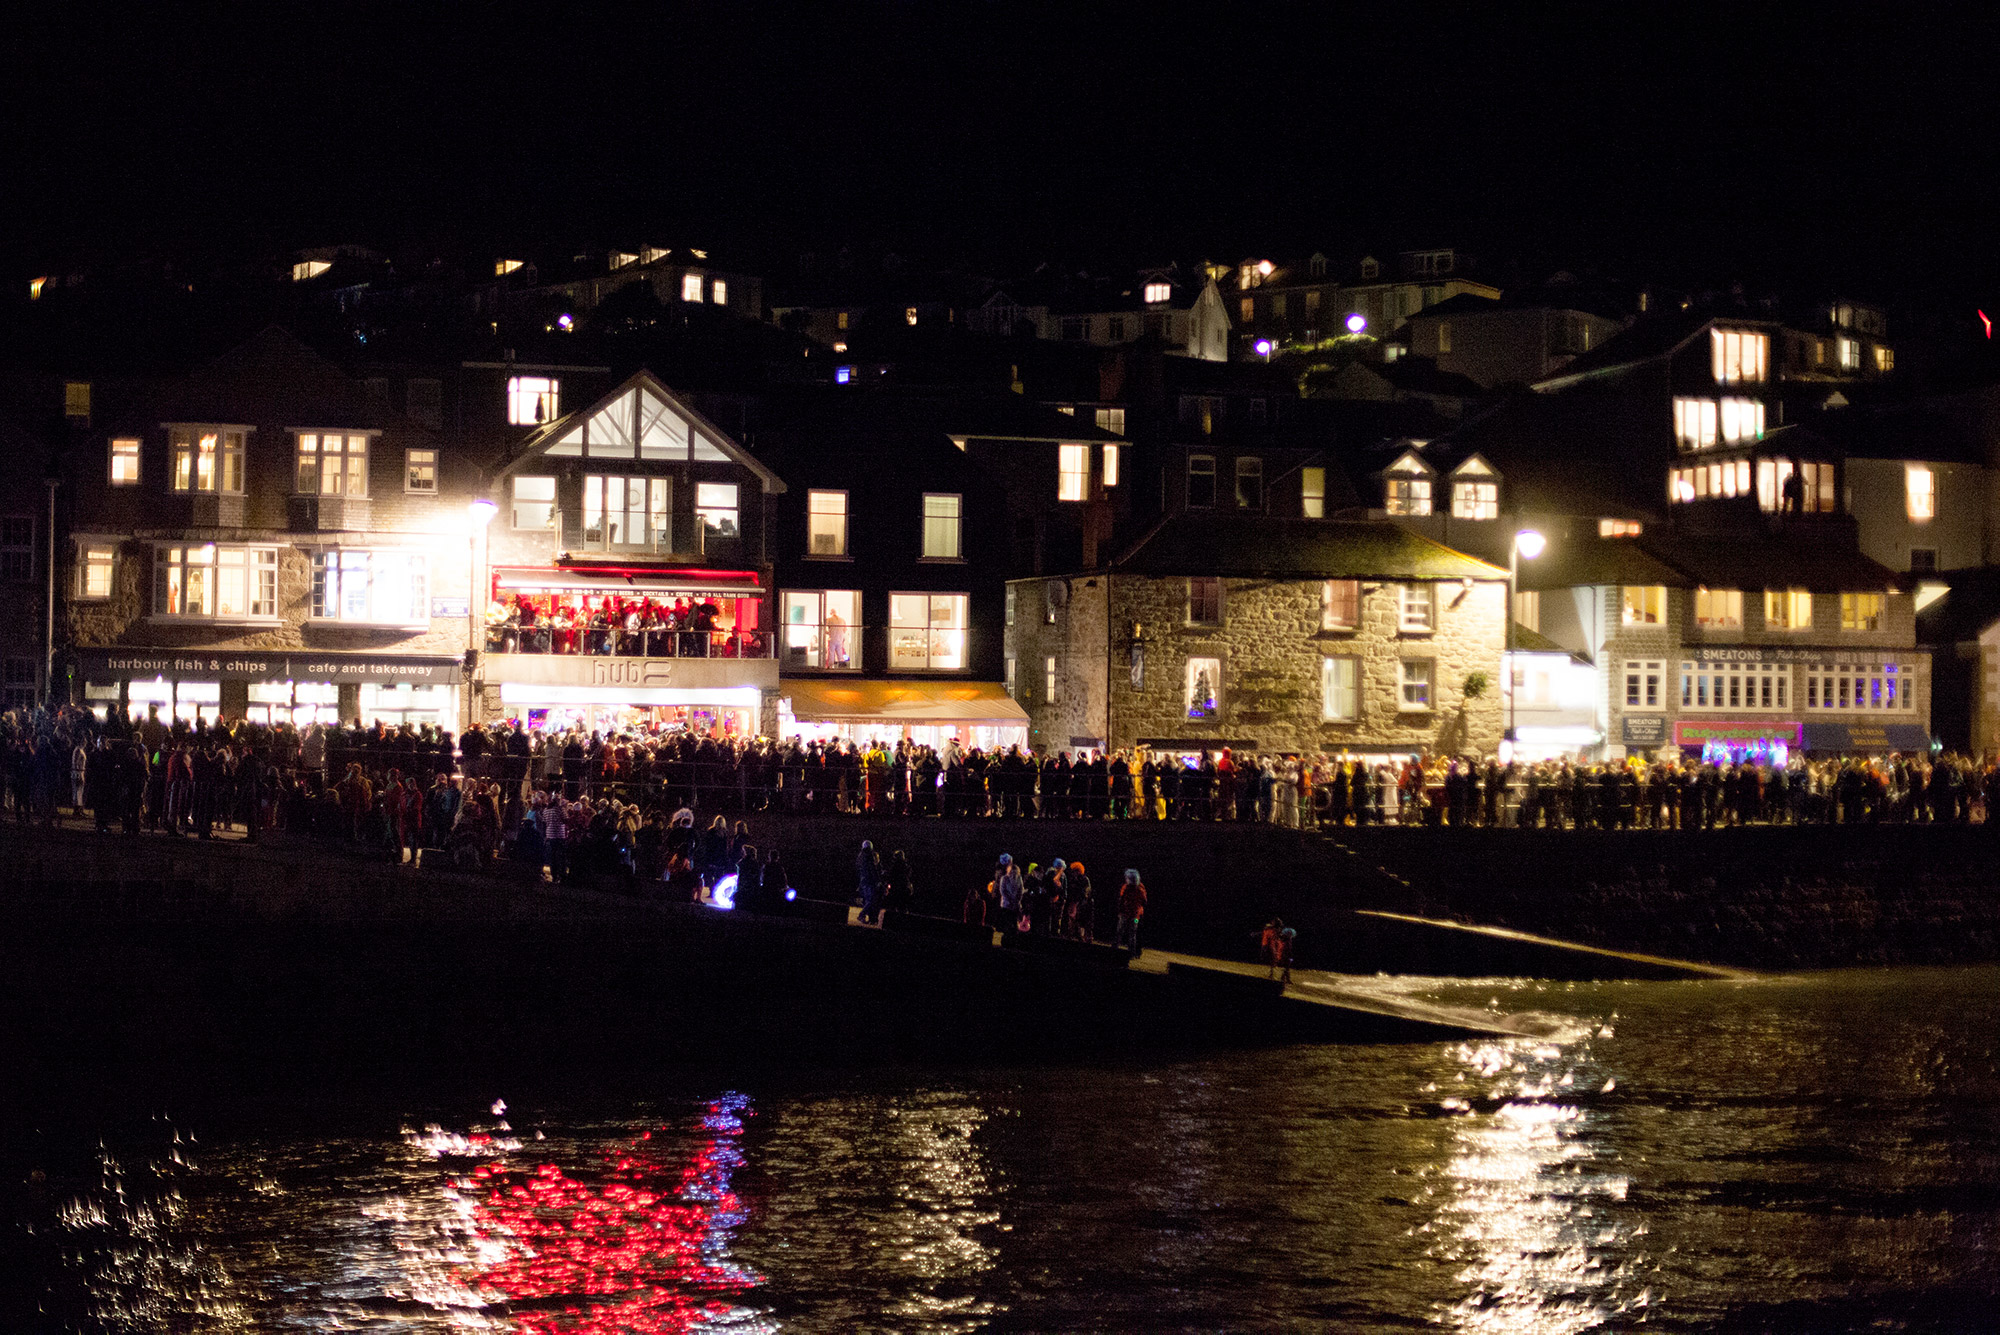 New Years eve revelers watch Firework display over St Ives Harbour